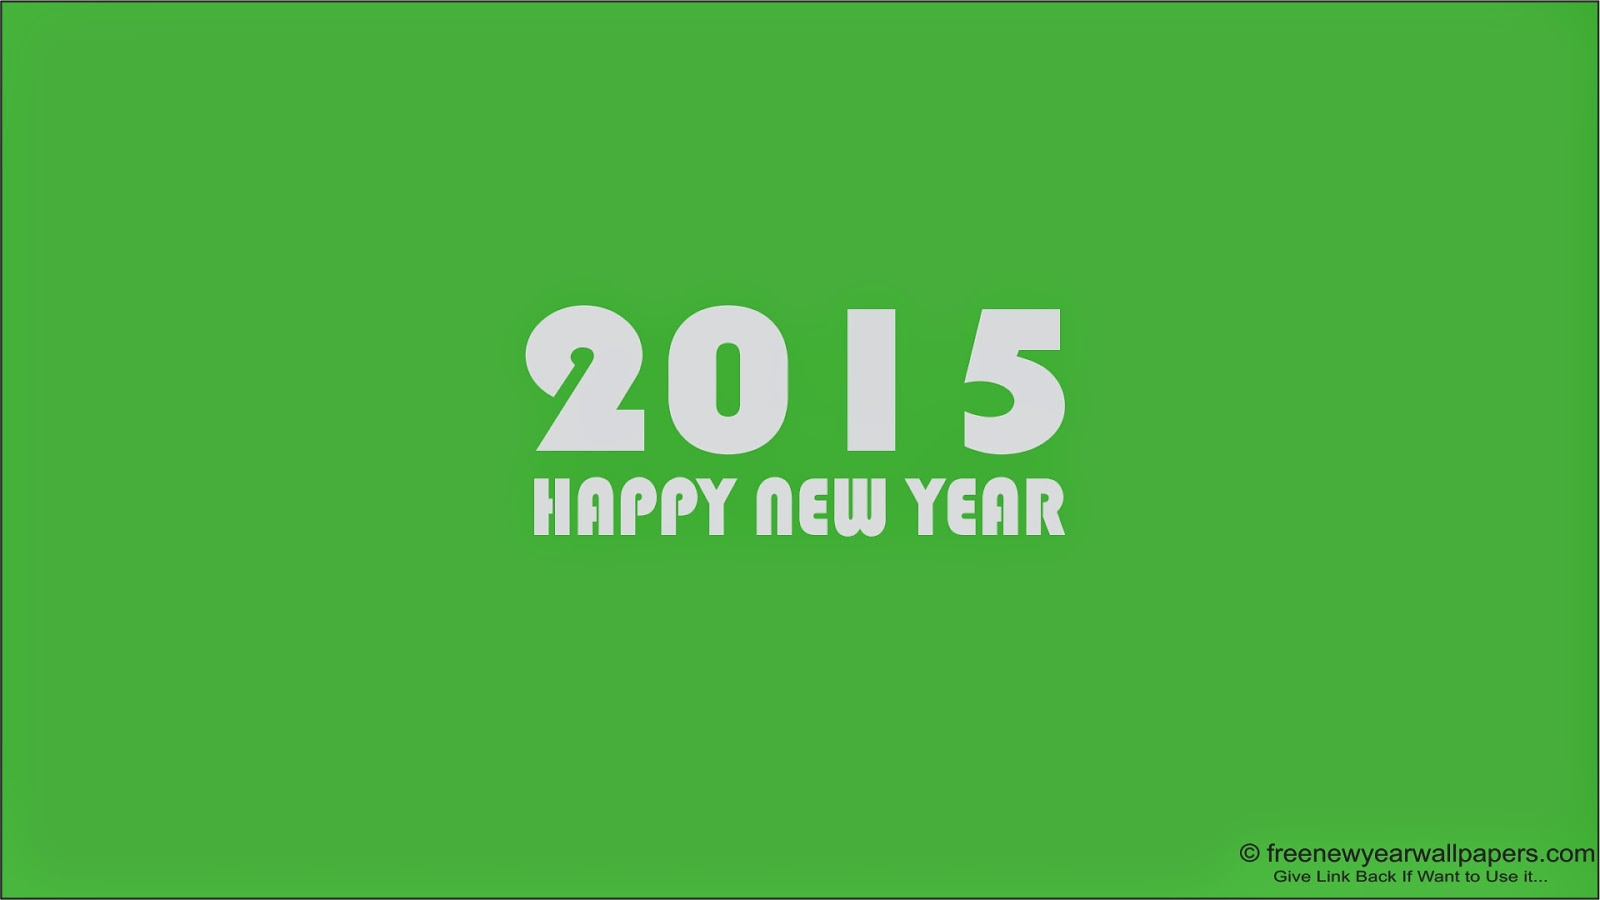 Wallpaper Happy New Year 2015